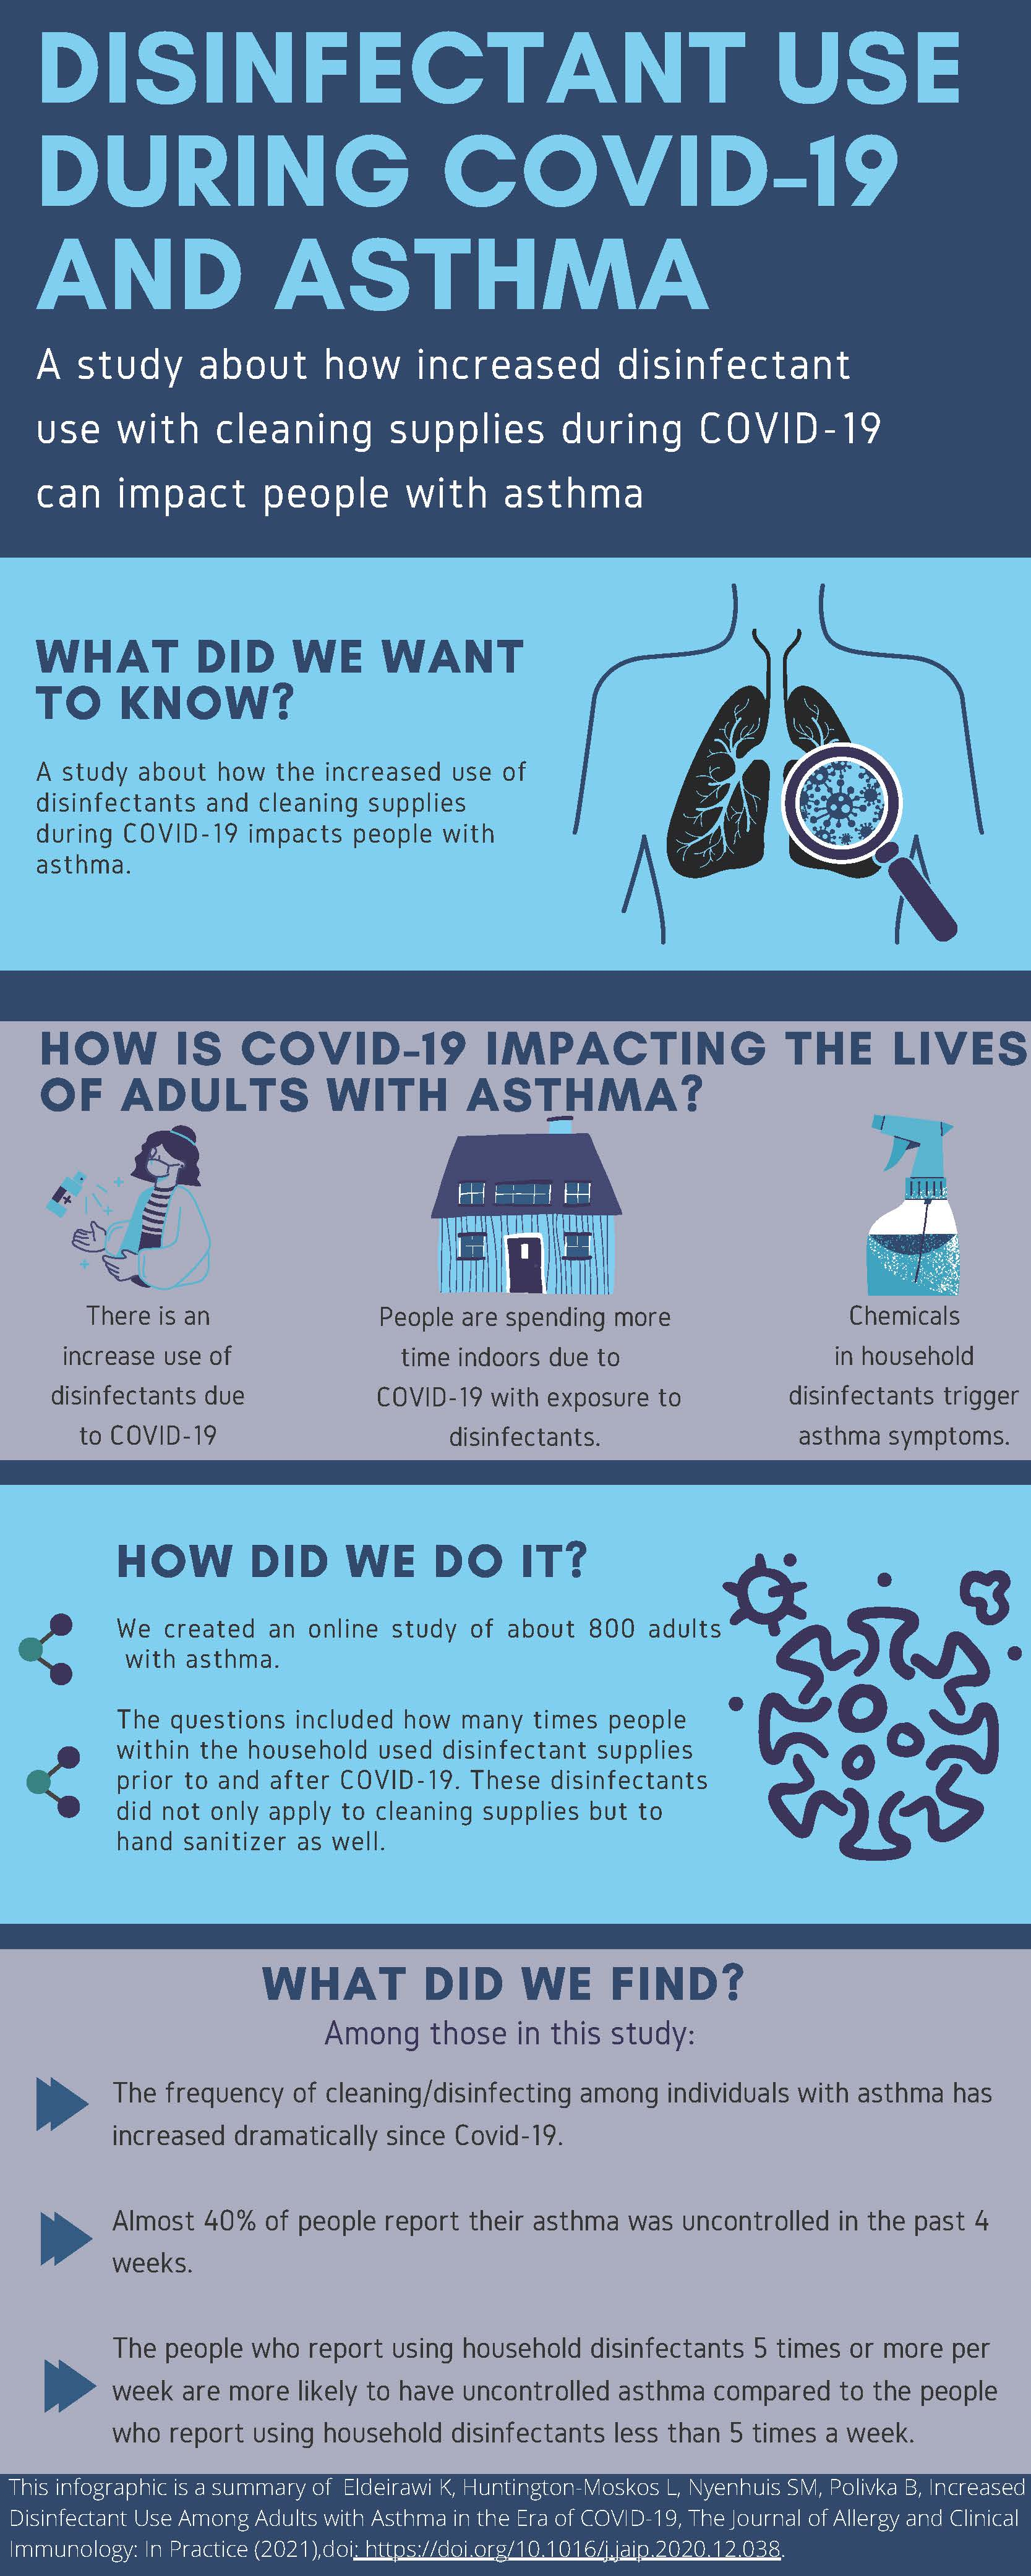 Global COVID-19 and Asthma Study Infographic